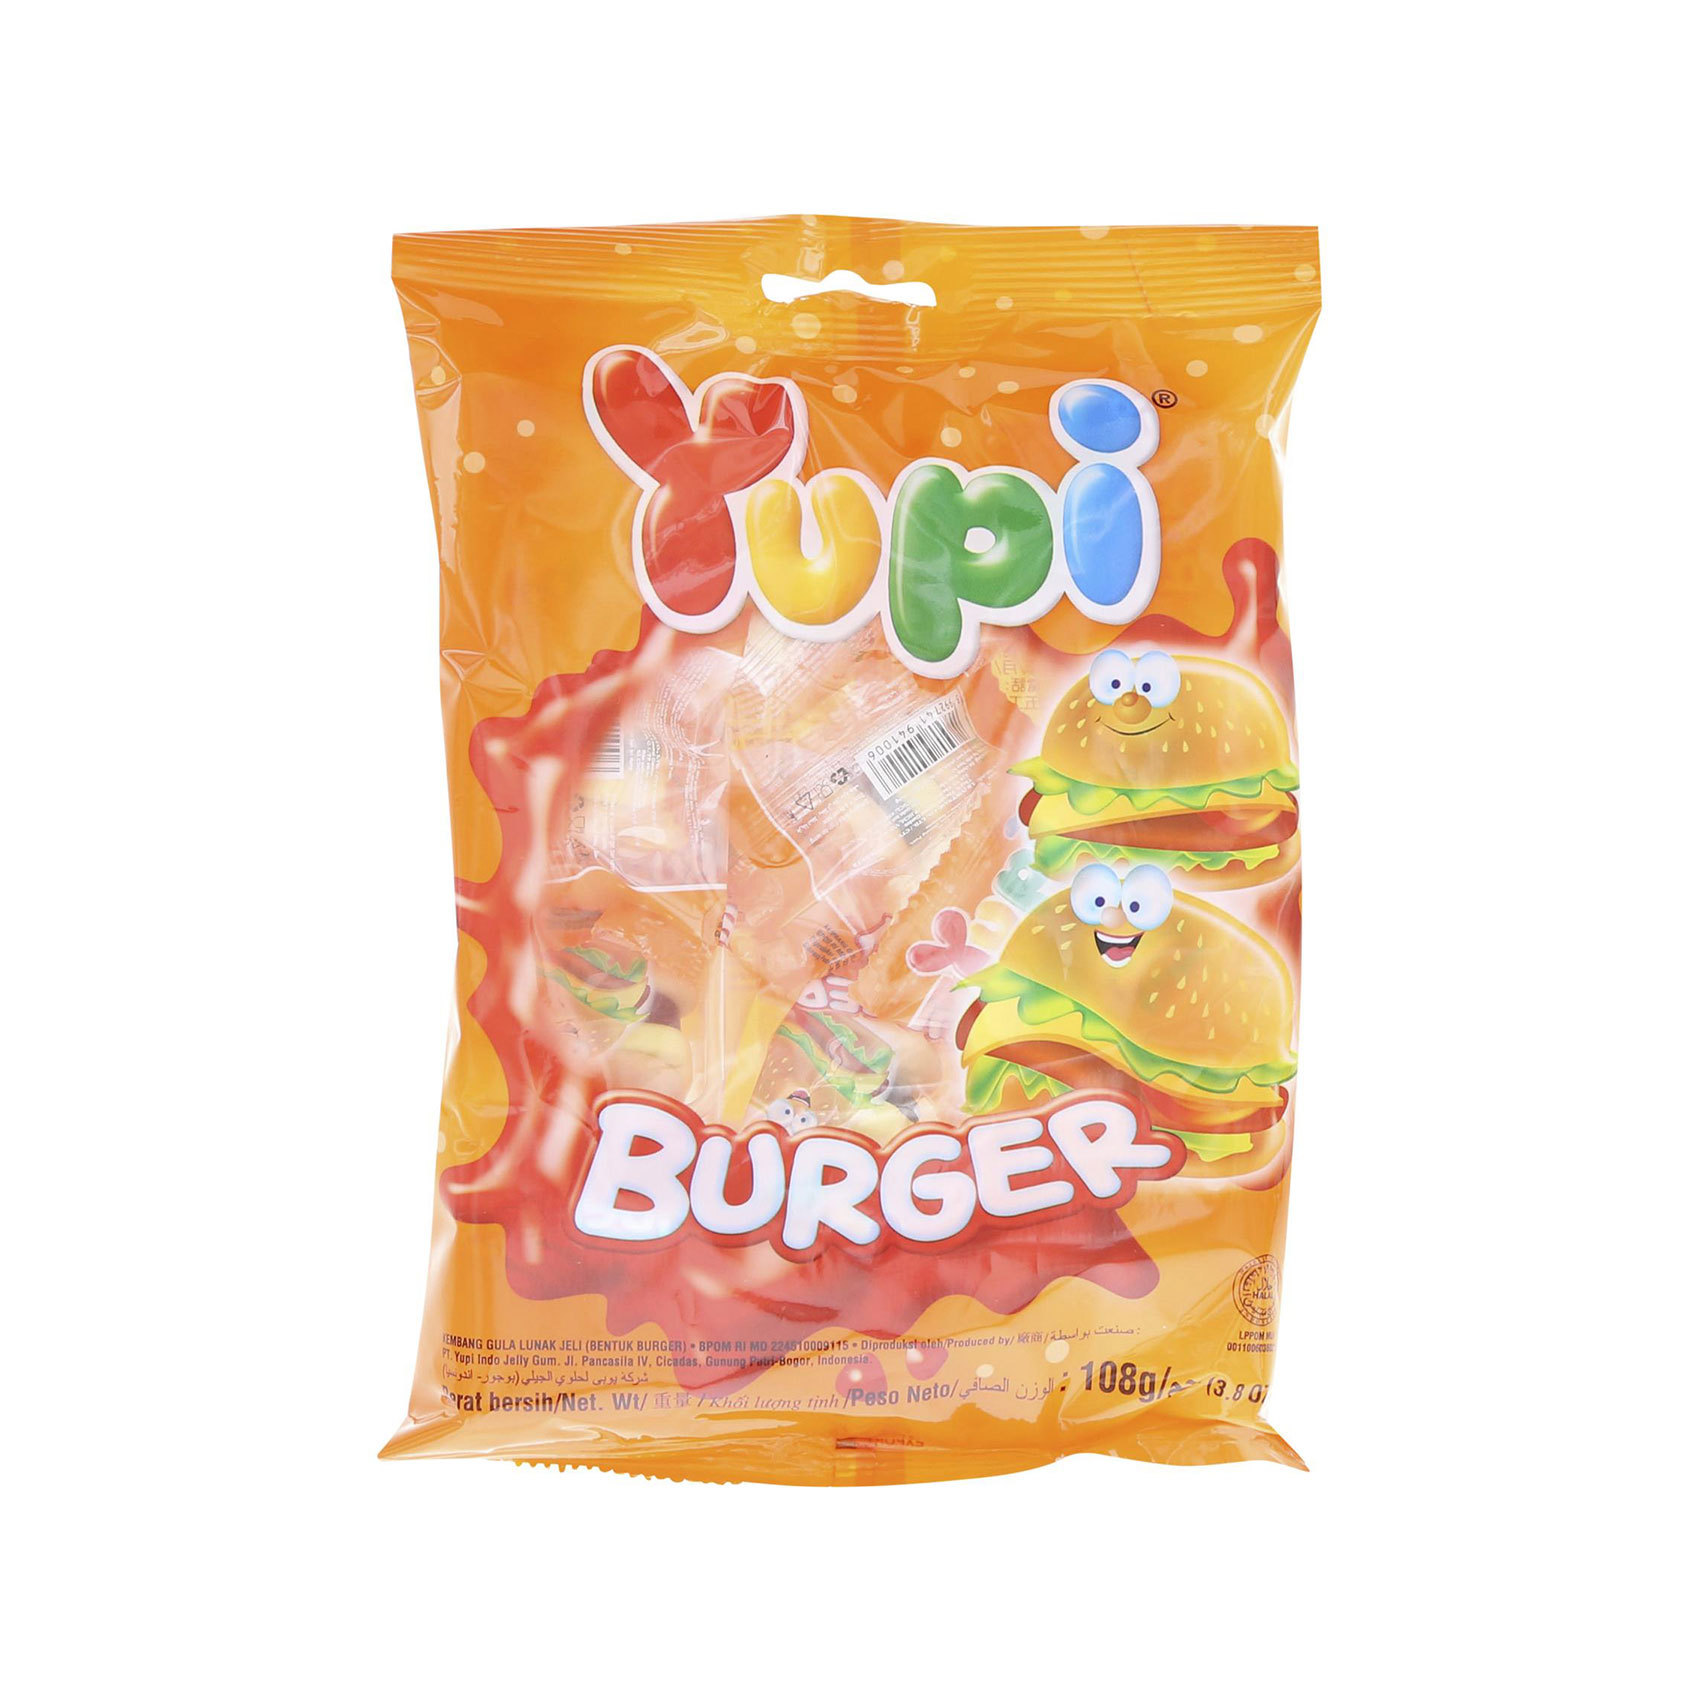 YUPI MINI BURGER BAG 120GR